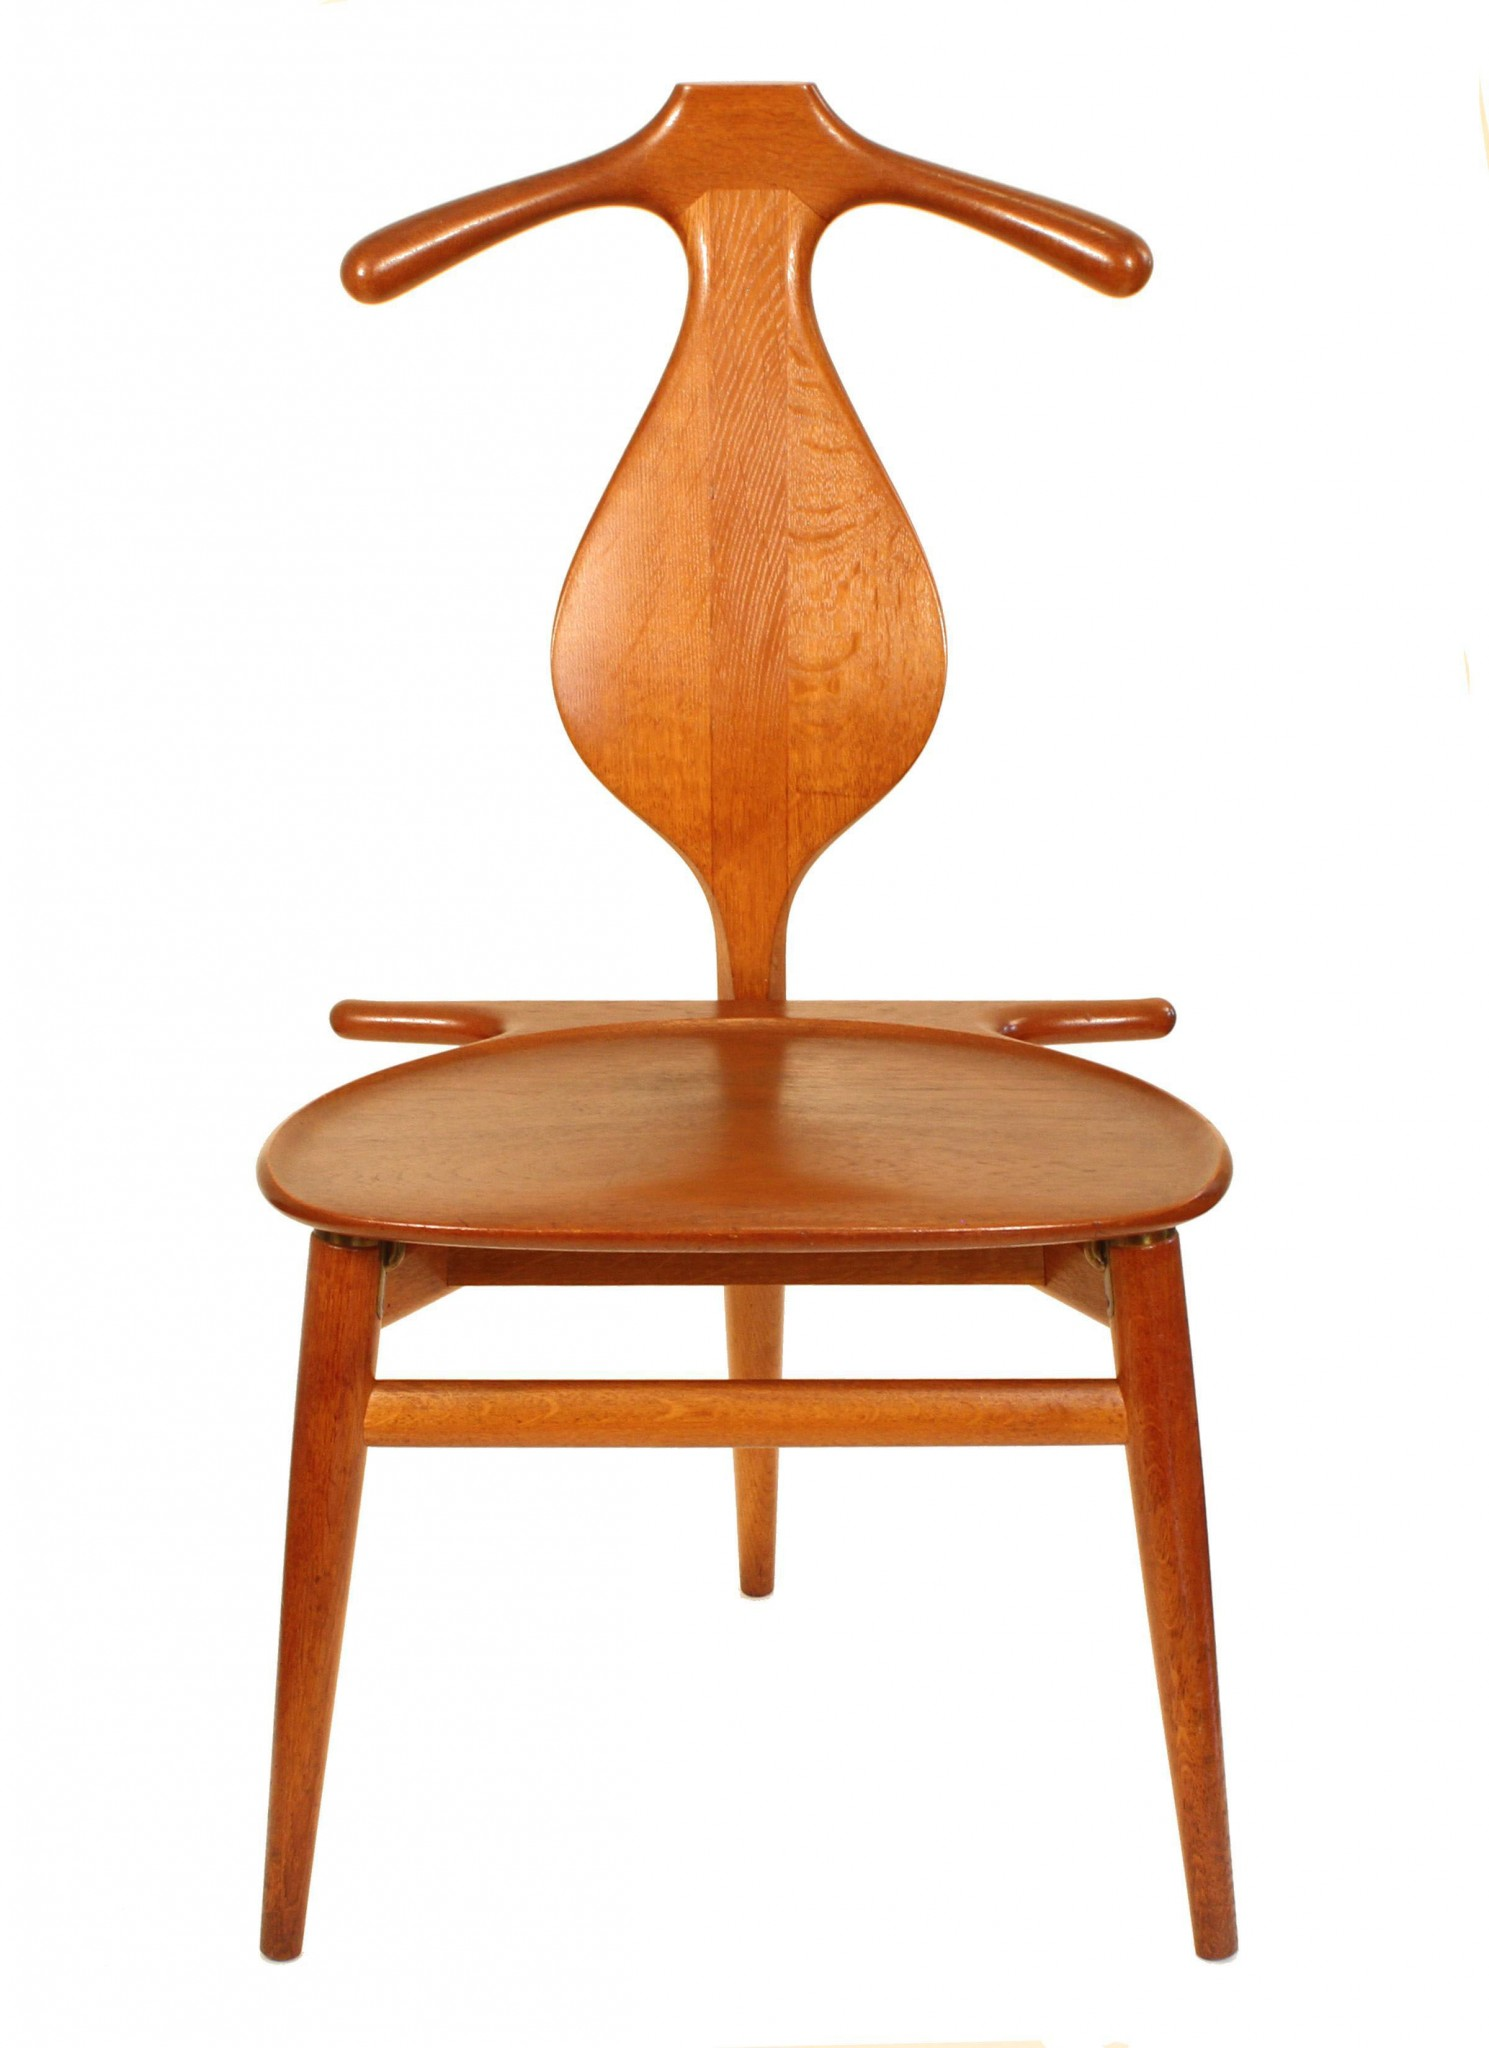 The Valet Chair, designed by Hans Wegner, Source